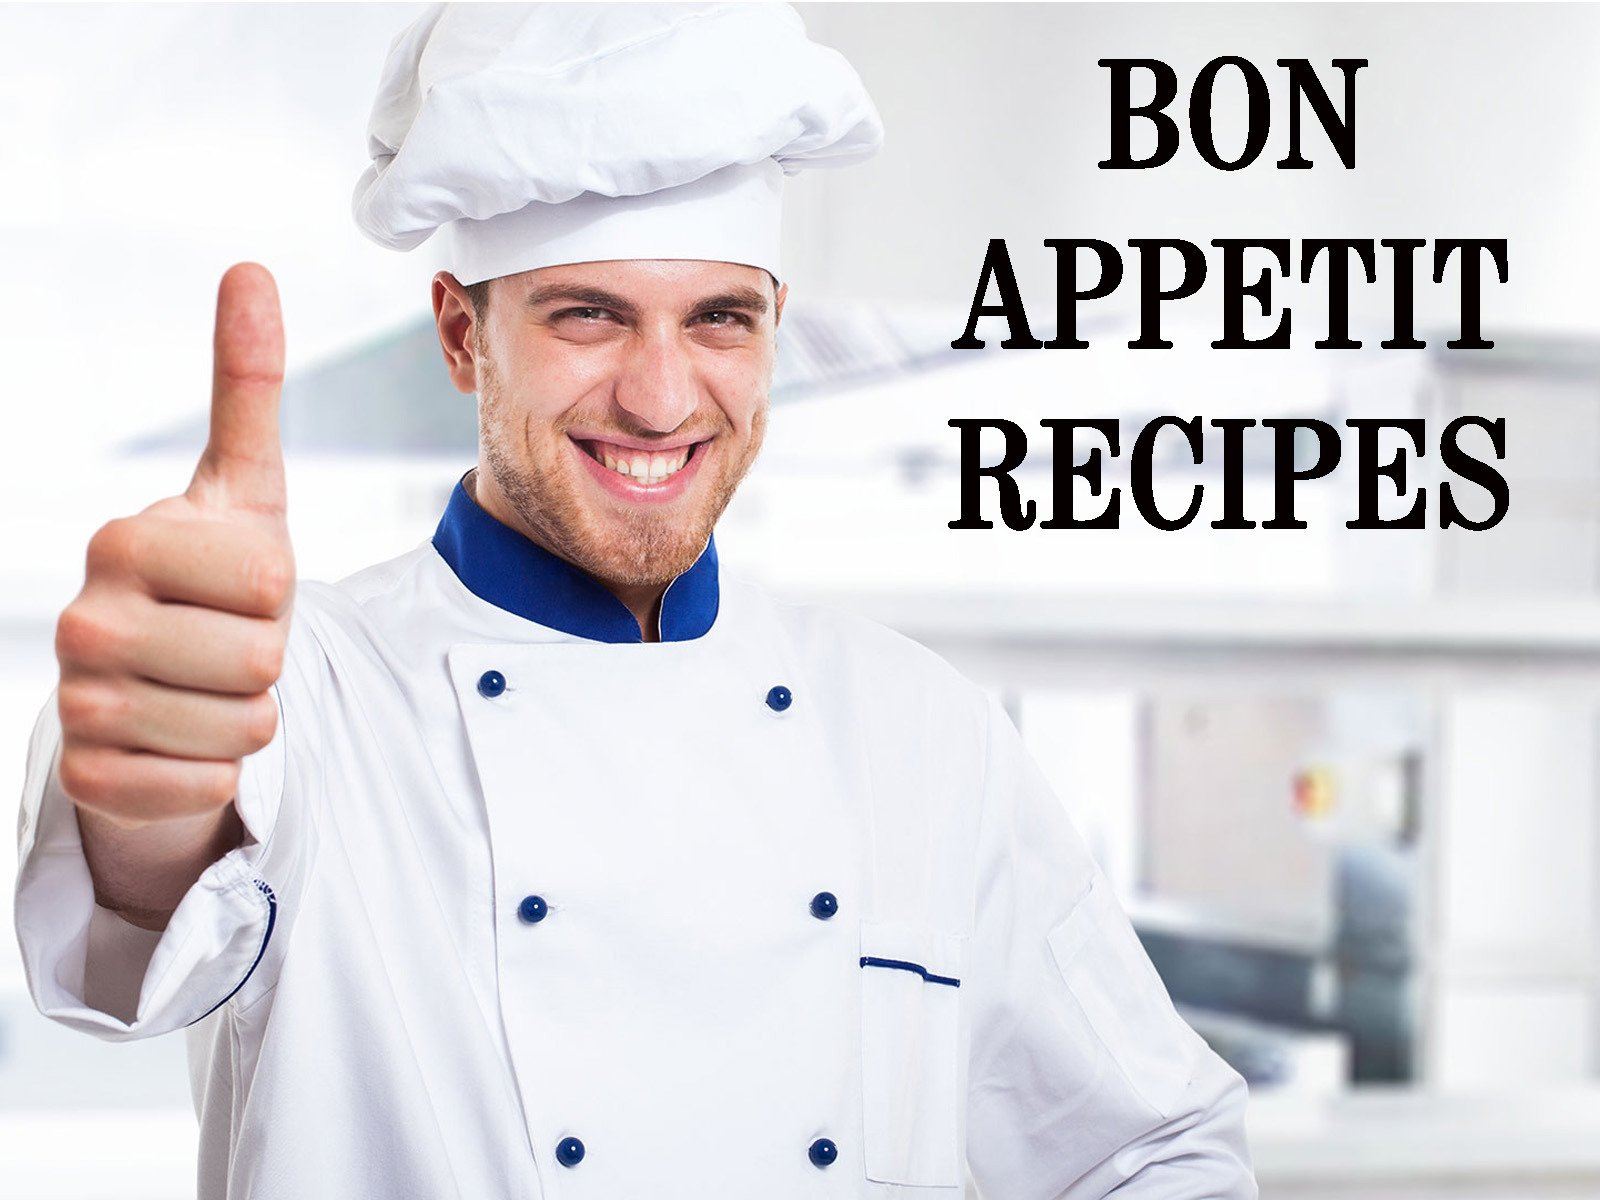 Bon Appetit recipes - Season 2